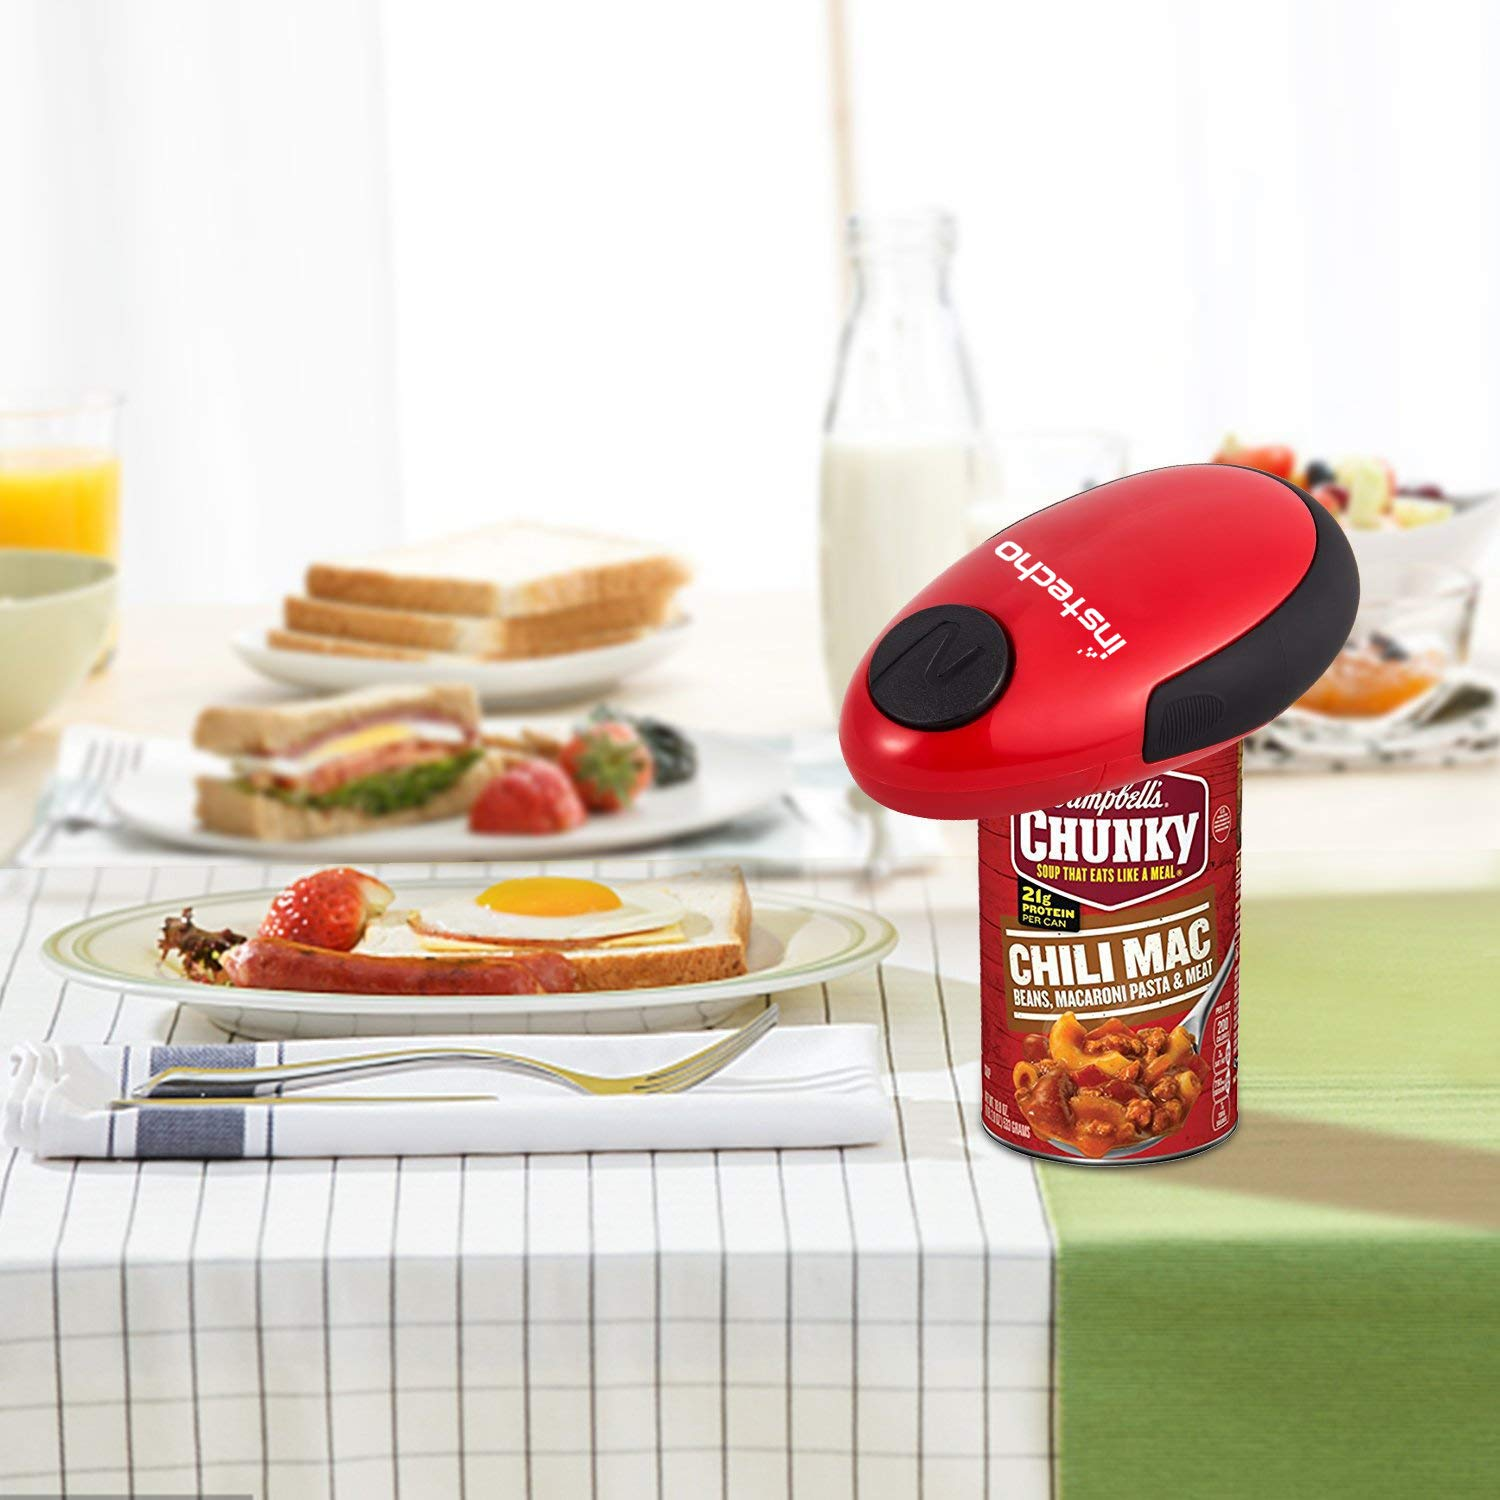 Electric Can Opener, Cakie Restaurant Can Opener Smooth Soft Edge One-touch Battery Automatic Electric Hands-free Can Opener For Kitchen Arthritis Elderly Travel and Chef's Best Choice's (Red) by instecho (Image #6)